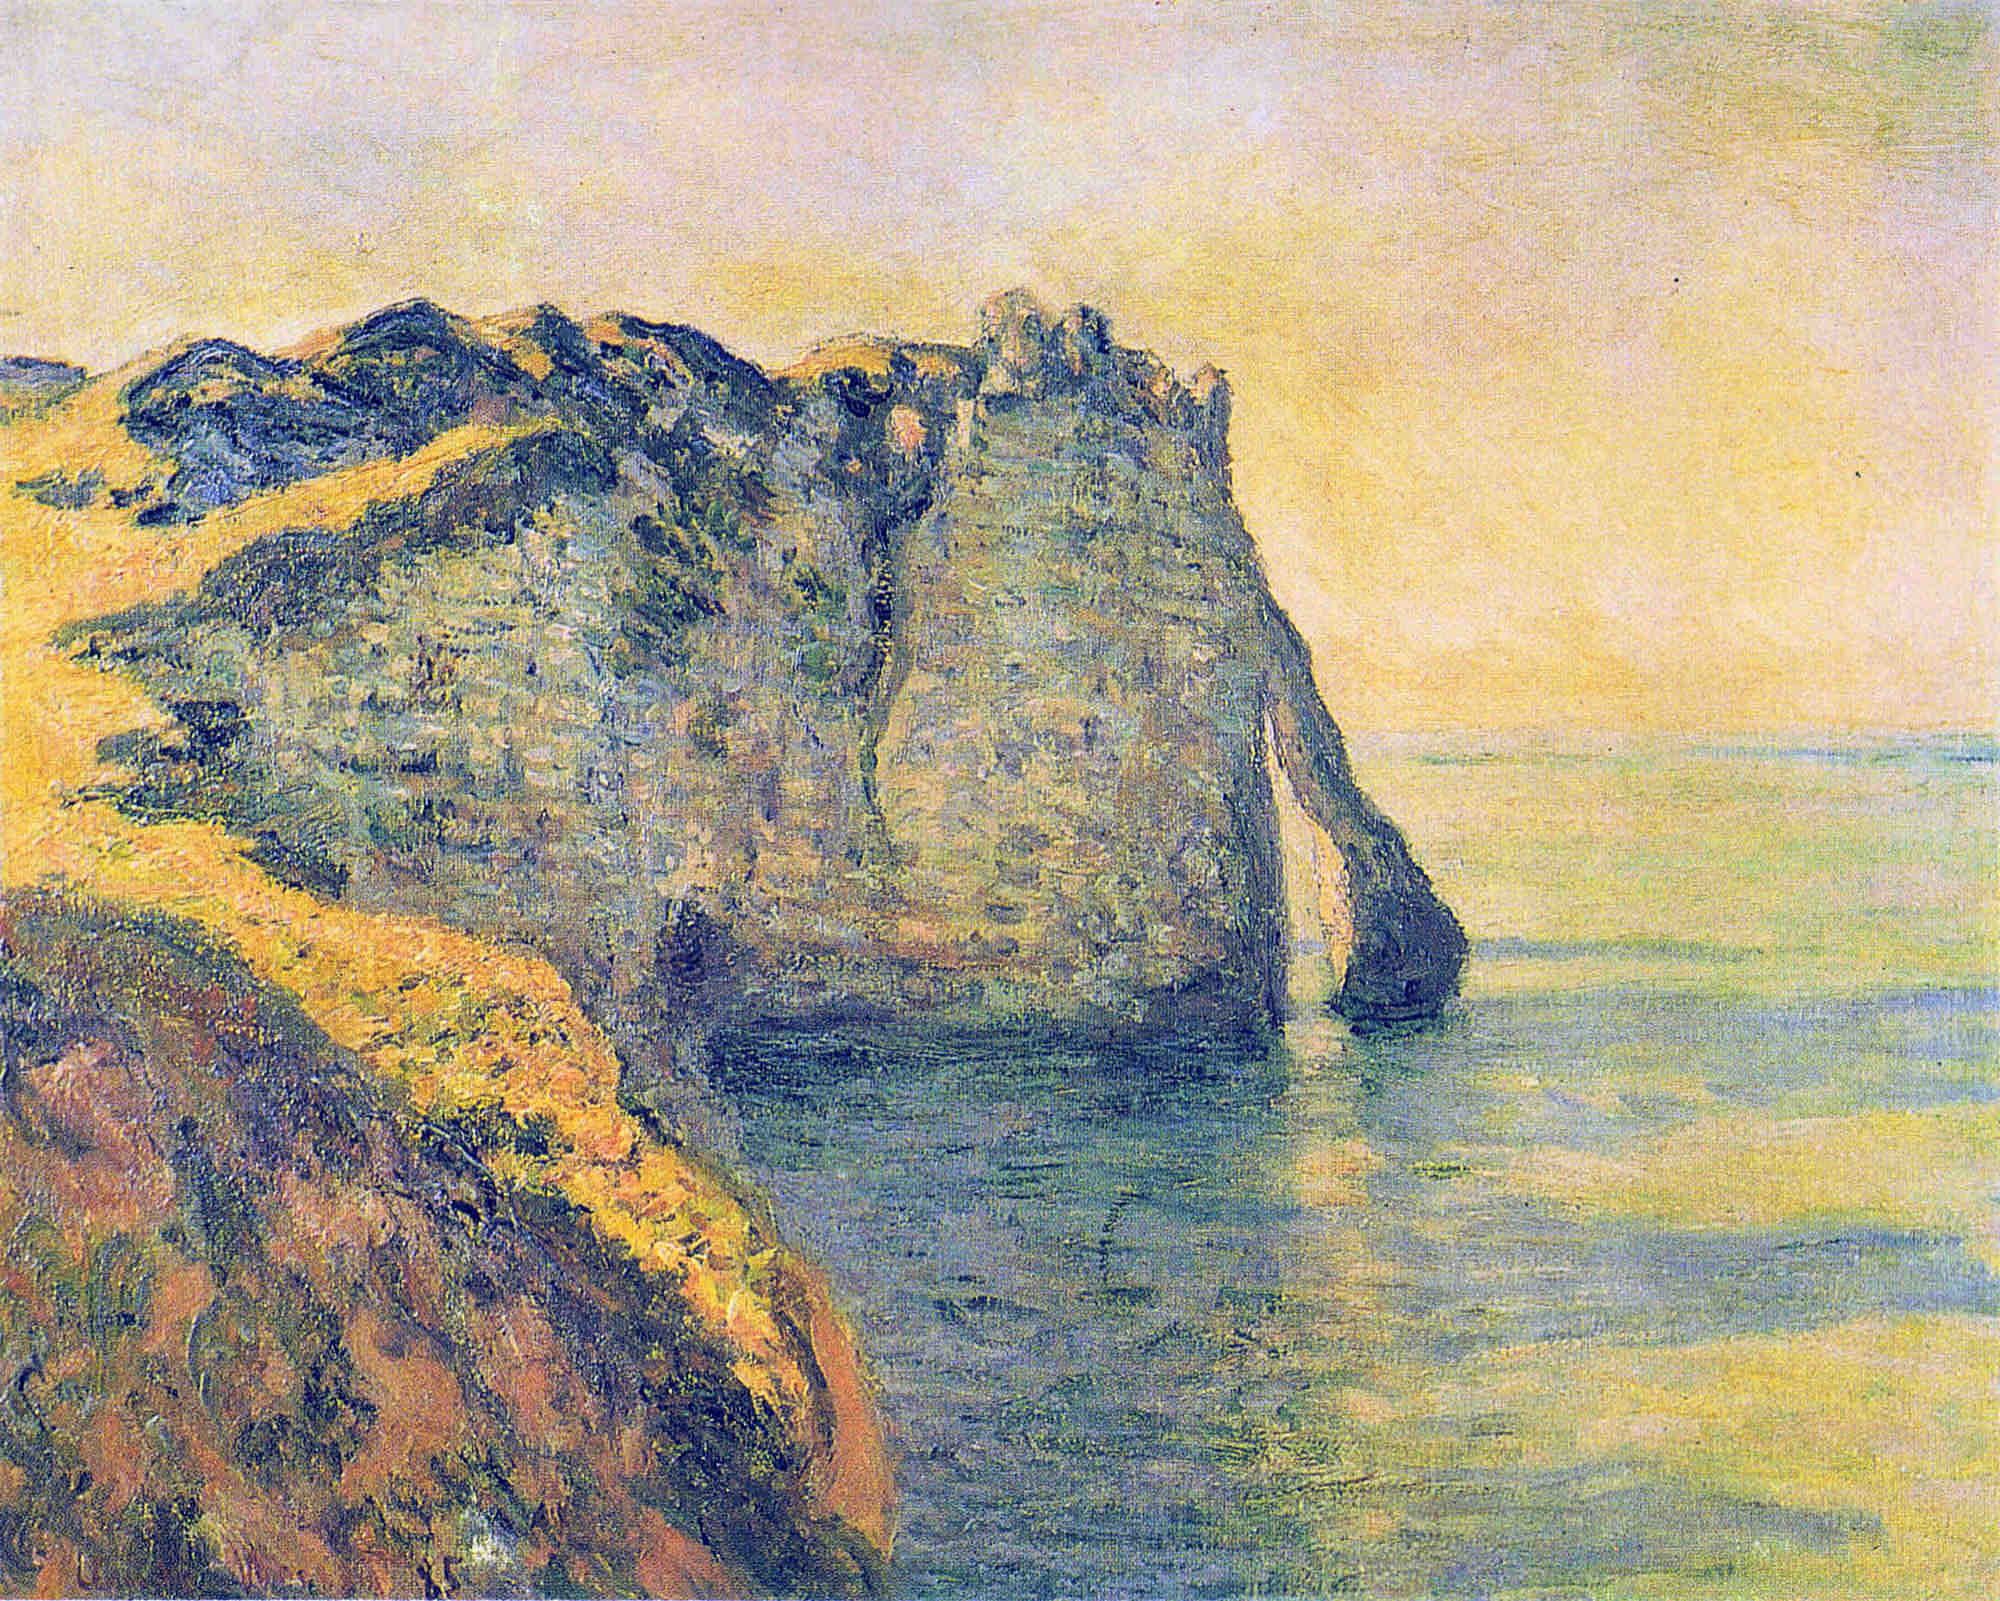 Cliffs of the Porte d'Aval 1885